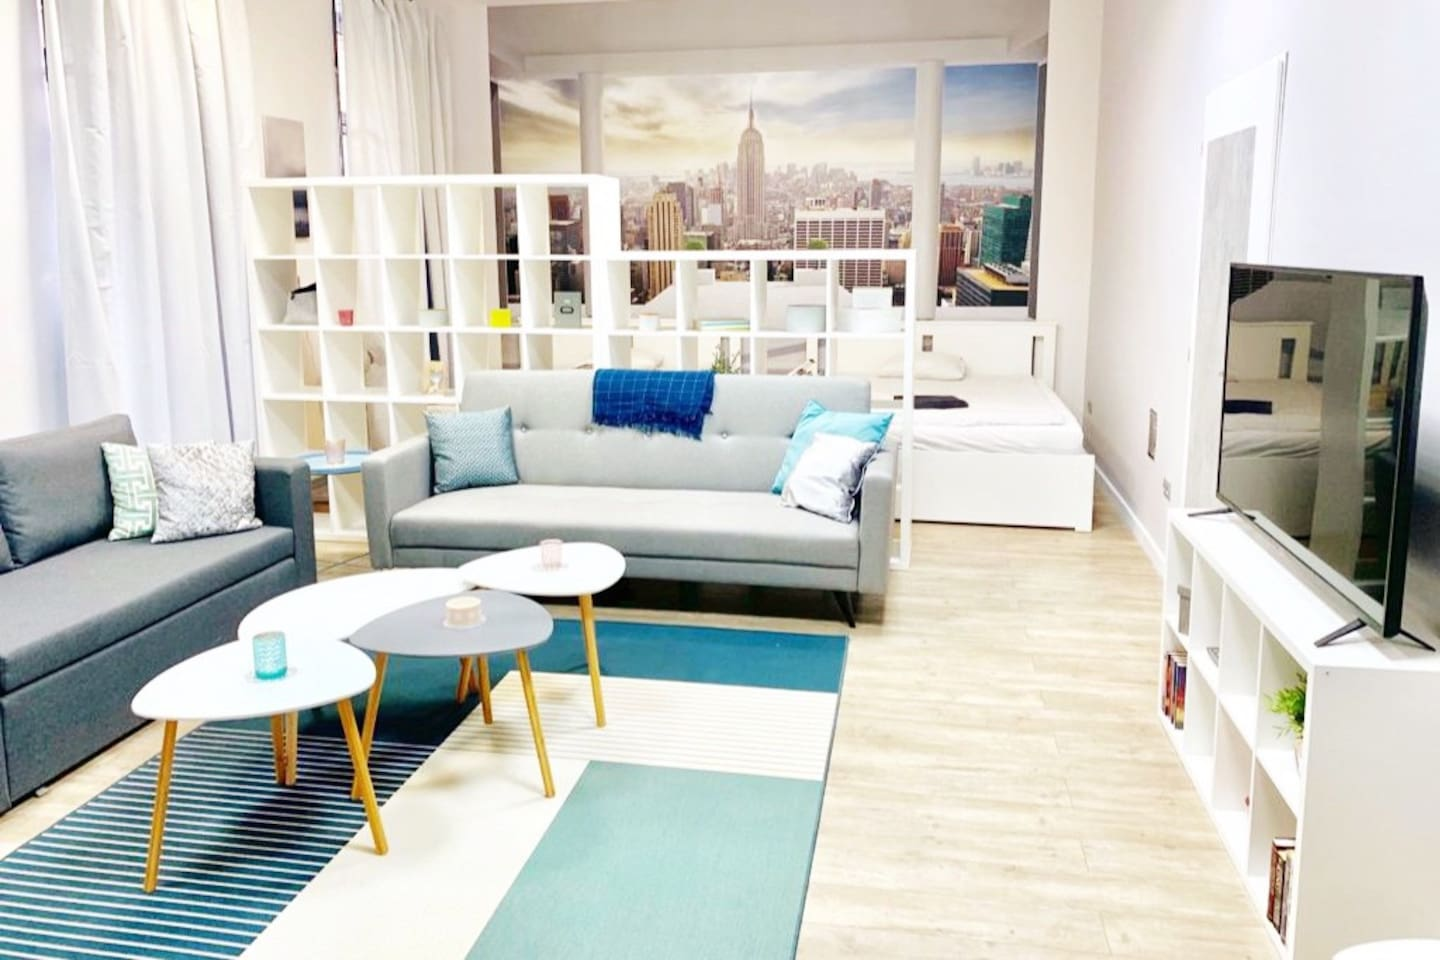 """One of 3 large suites in the flat, the """"New York"""" Suite features a 60"""" Smart TV (Netflix etc.), a large dining table, sofas that turn into beds, two queen size beds and a lounger chair. Four floor to ceiling windows face the wide and bright street."""